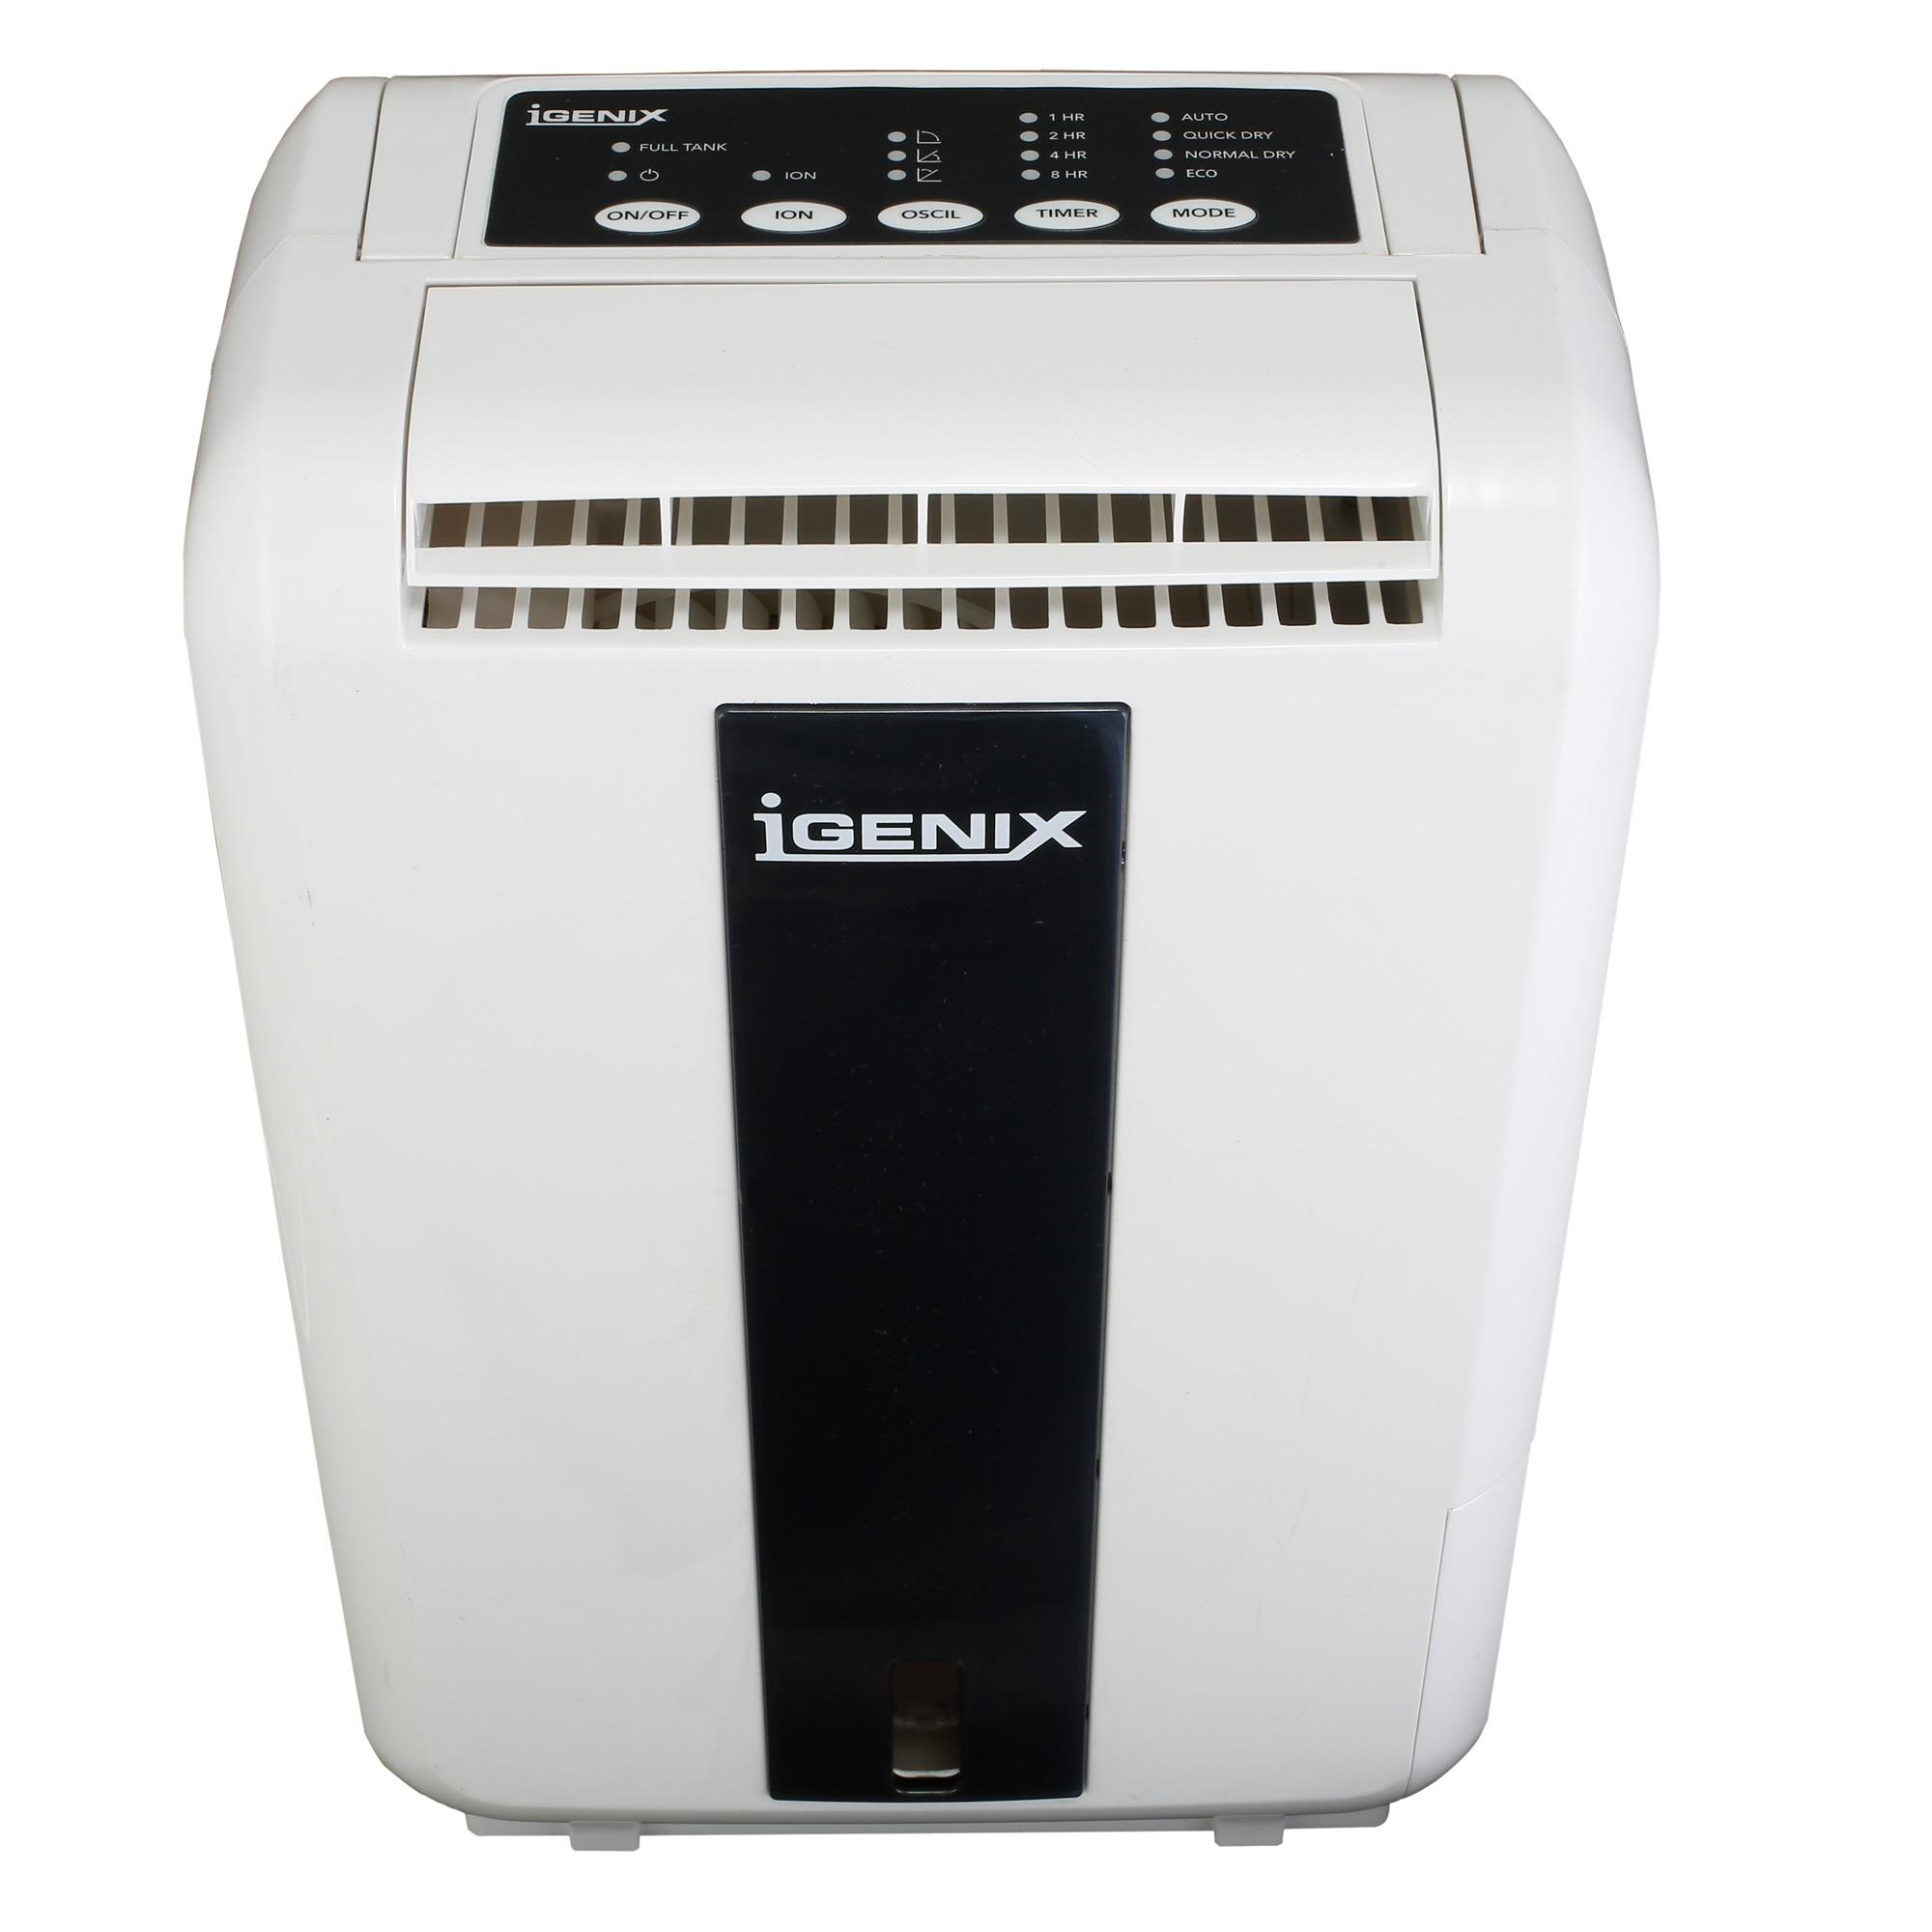 Desiccant Dehumidifier 7 L White: Amazon.co.uk: Kitchen & Home #595043